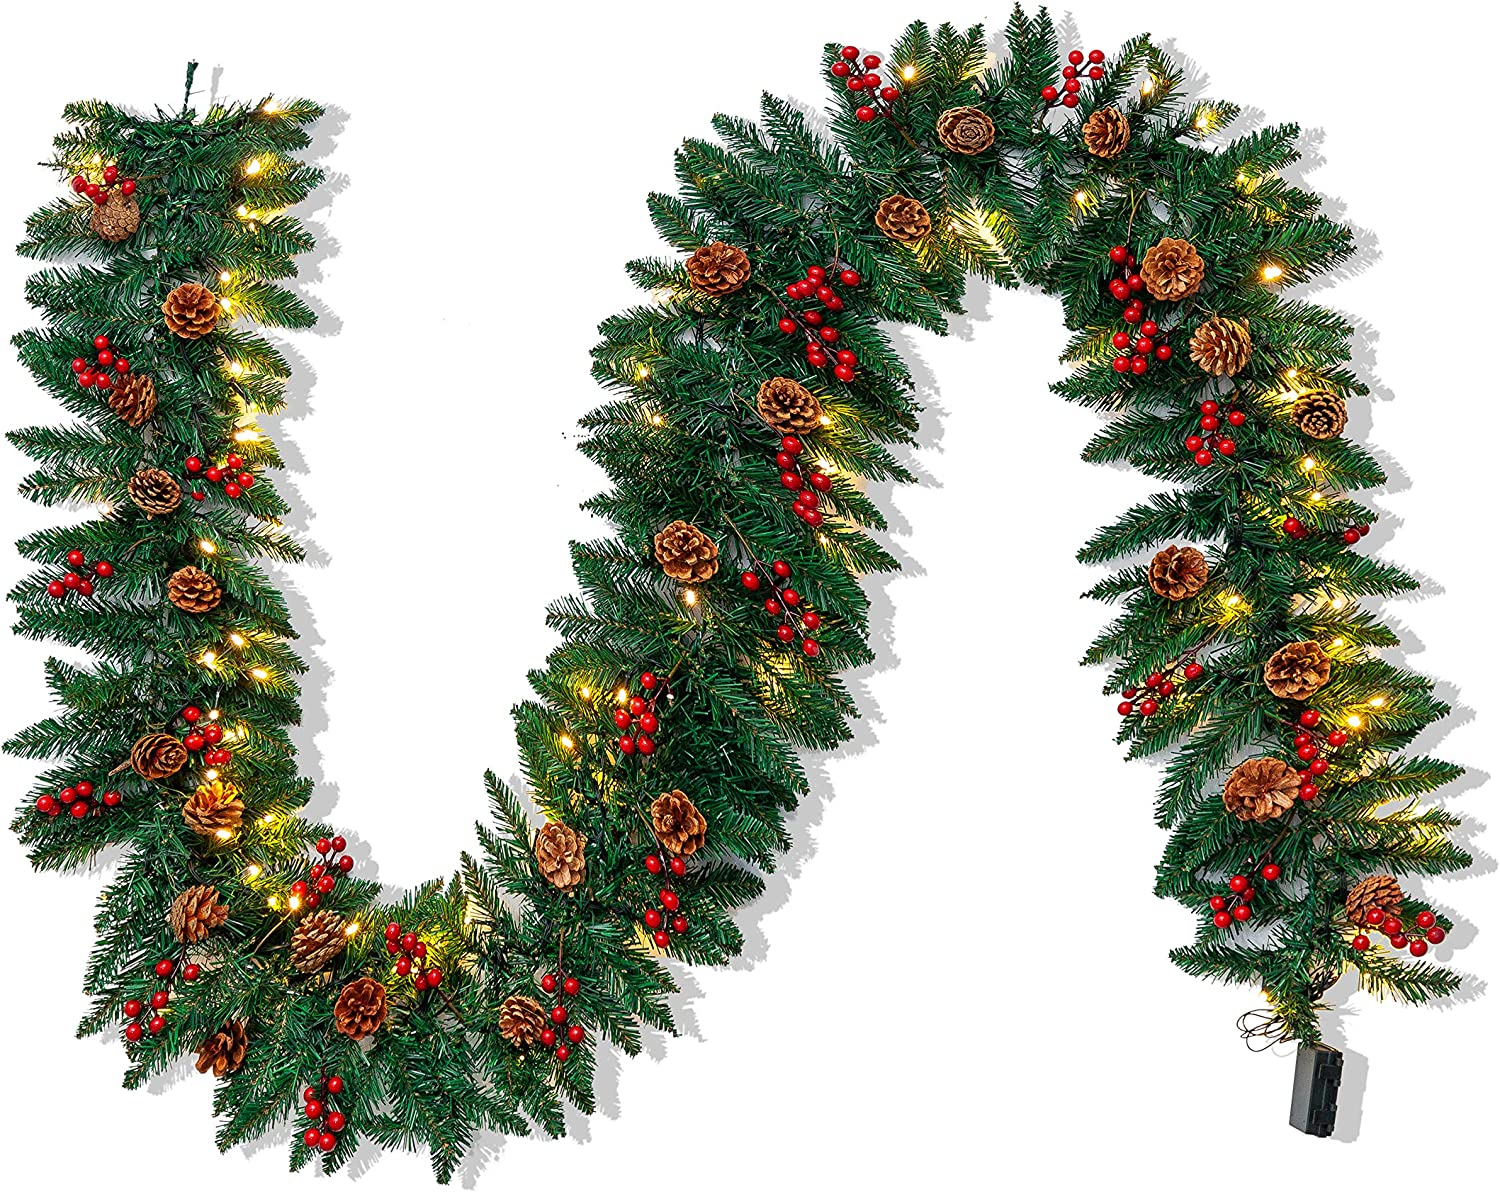 Joiedomi 9Ft Artificial Christmas Garland Prelit with 100 LED Lights, 27 Pine Cones, 27 Red Berries for Home & Office Christmas Decorations (Battery Powered, Batteries not Included)